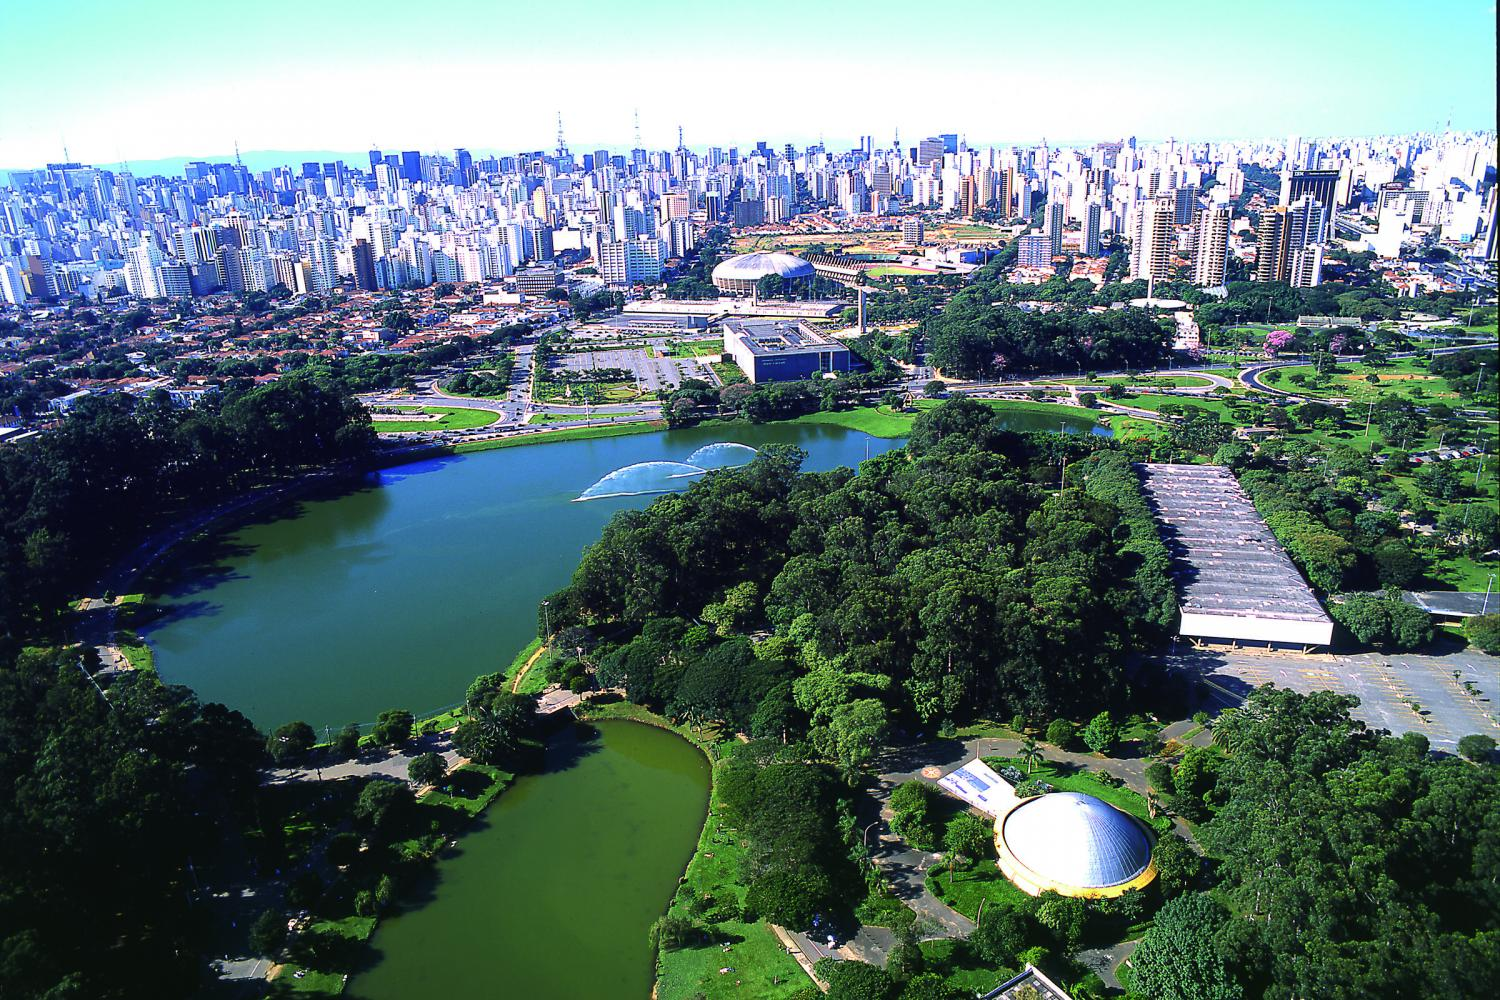 Ibirapuera Park in Brazil is 15th on the list of the 20 most checked-in places on Facebook in 2015.